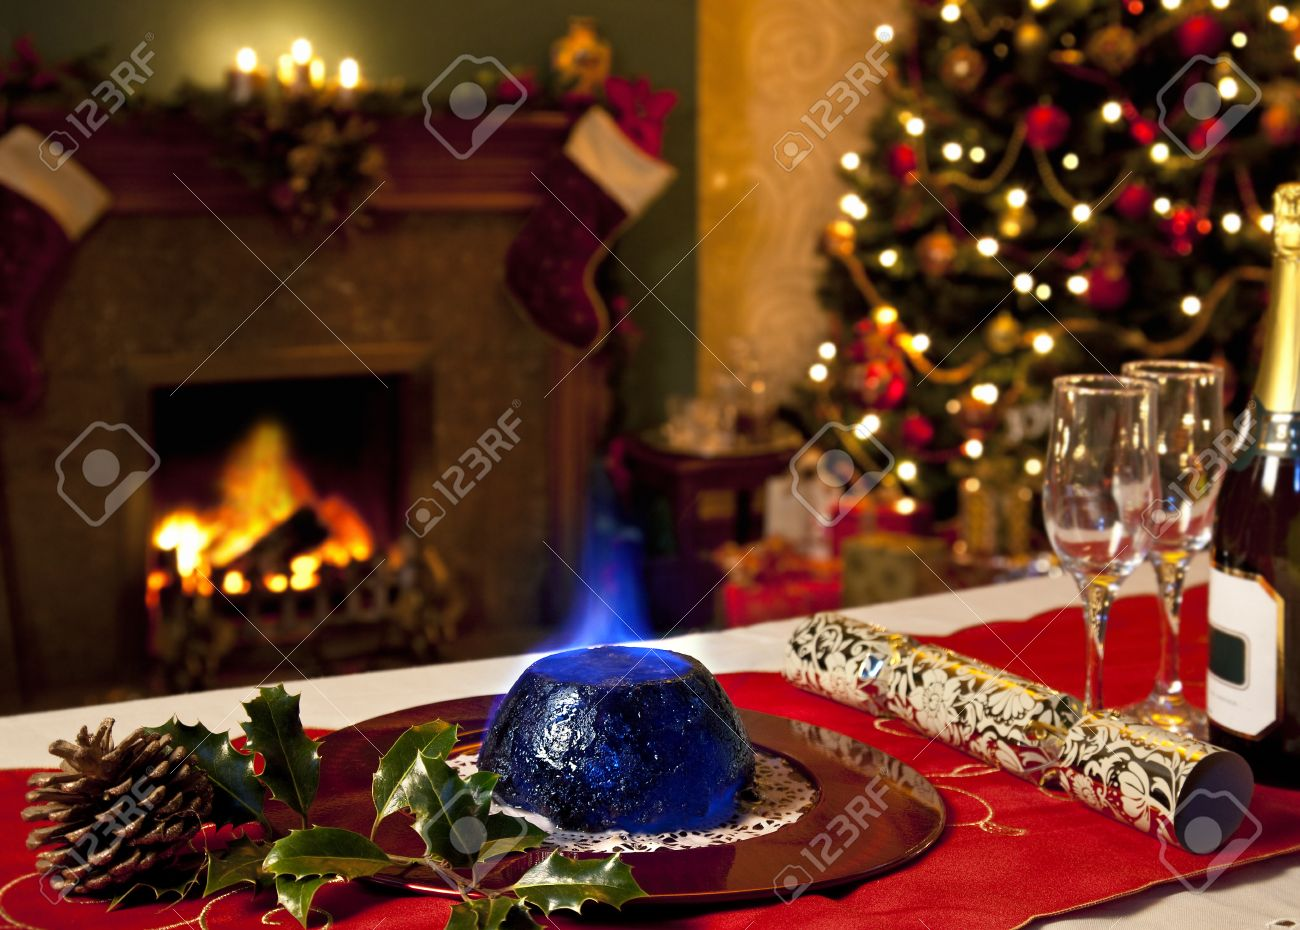 a christmas pudding with burning brandy topping with a festive